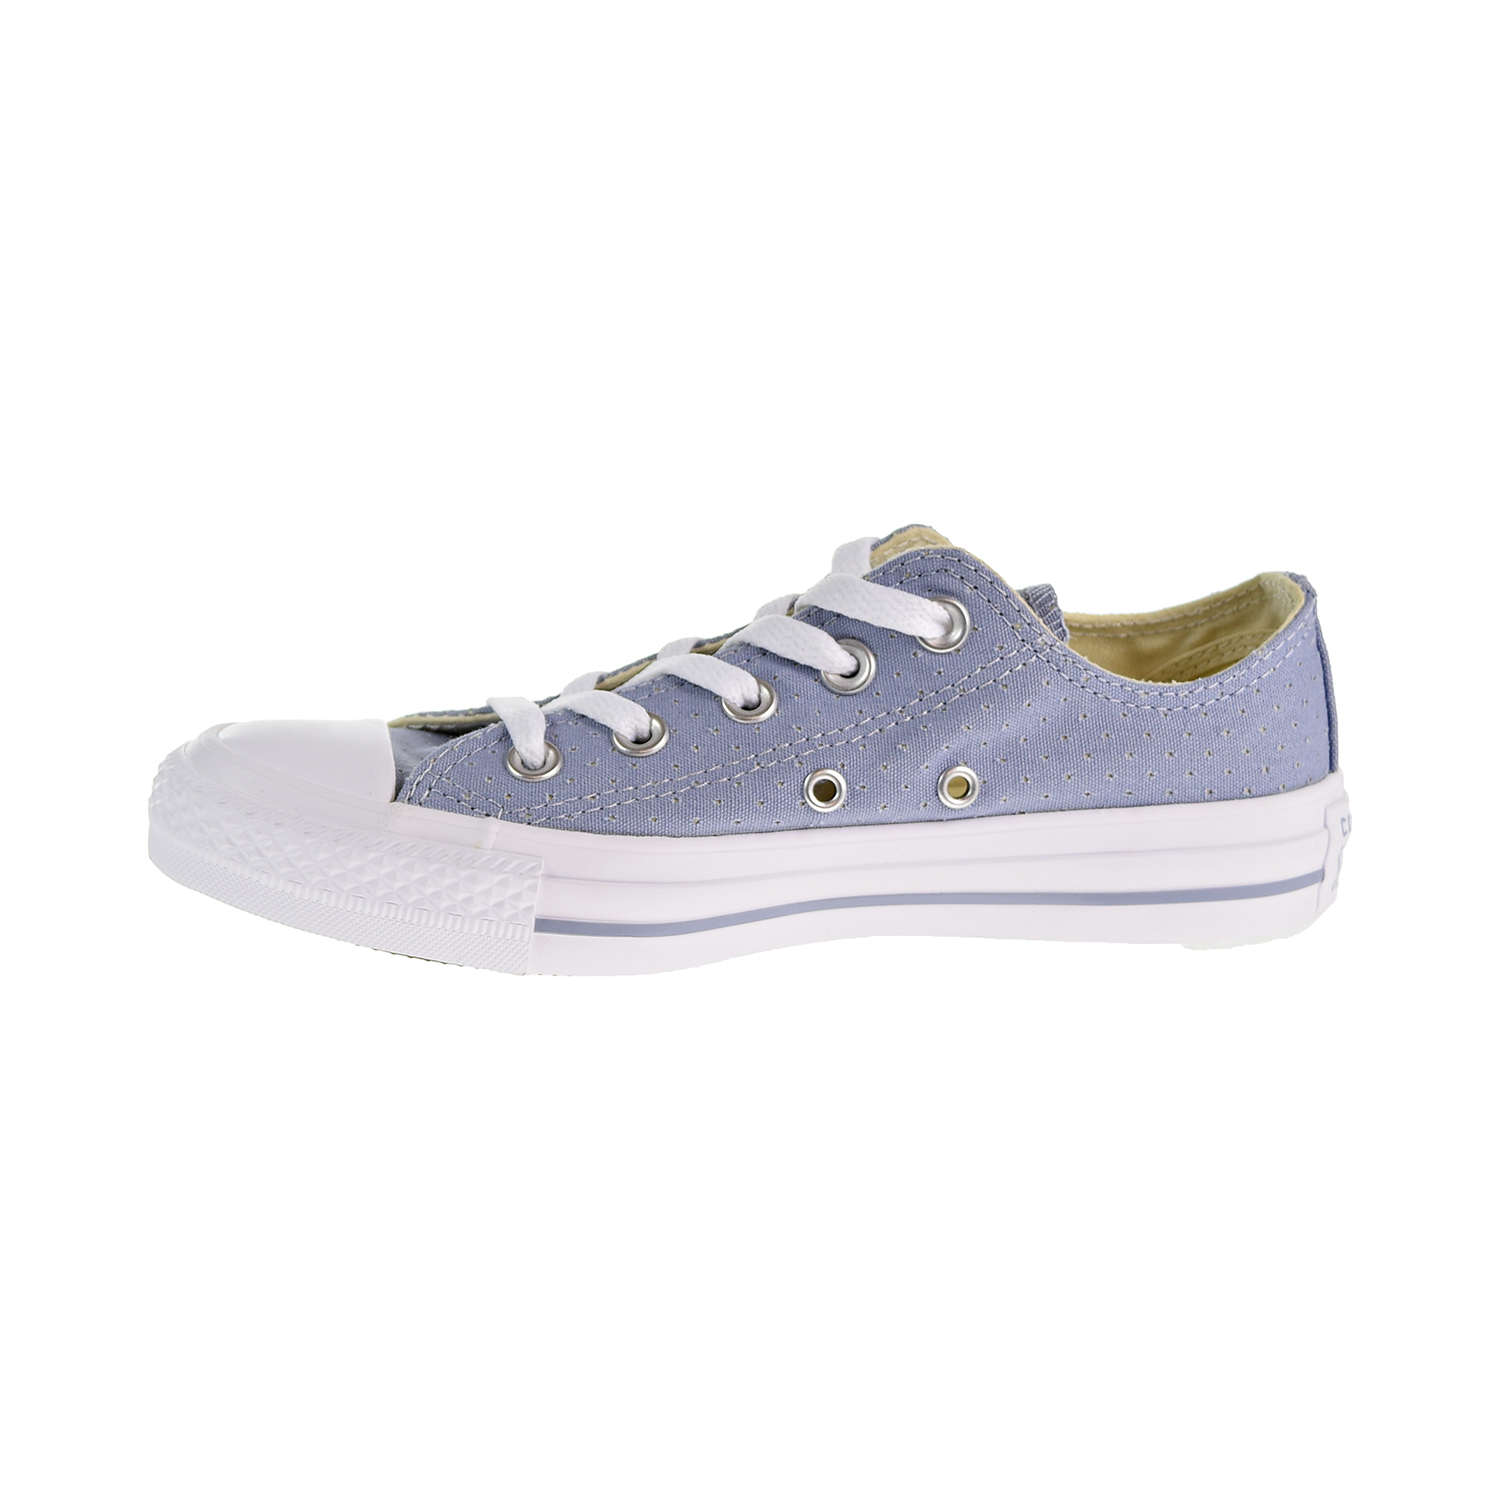 193f8433deb Converse Chuck Taylor All Star Ox Perforated Women s Shoes Glacier Grey White  560679c